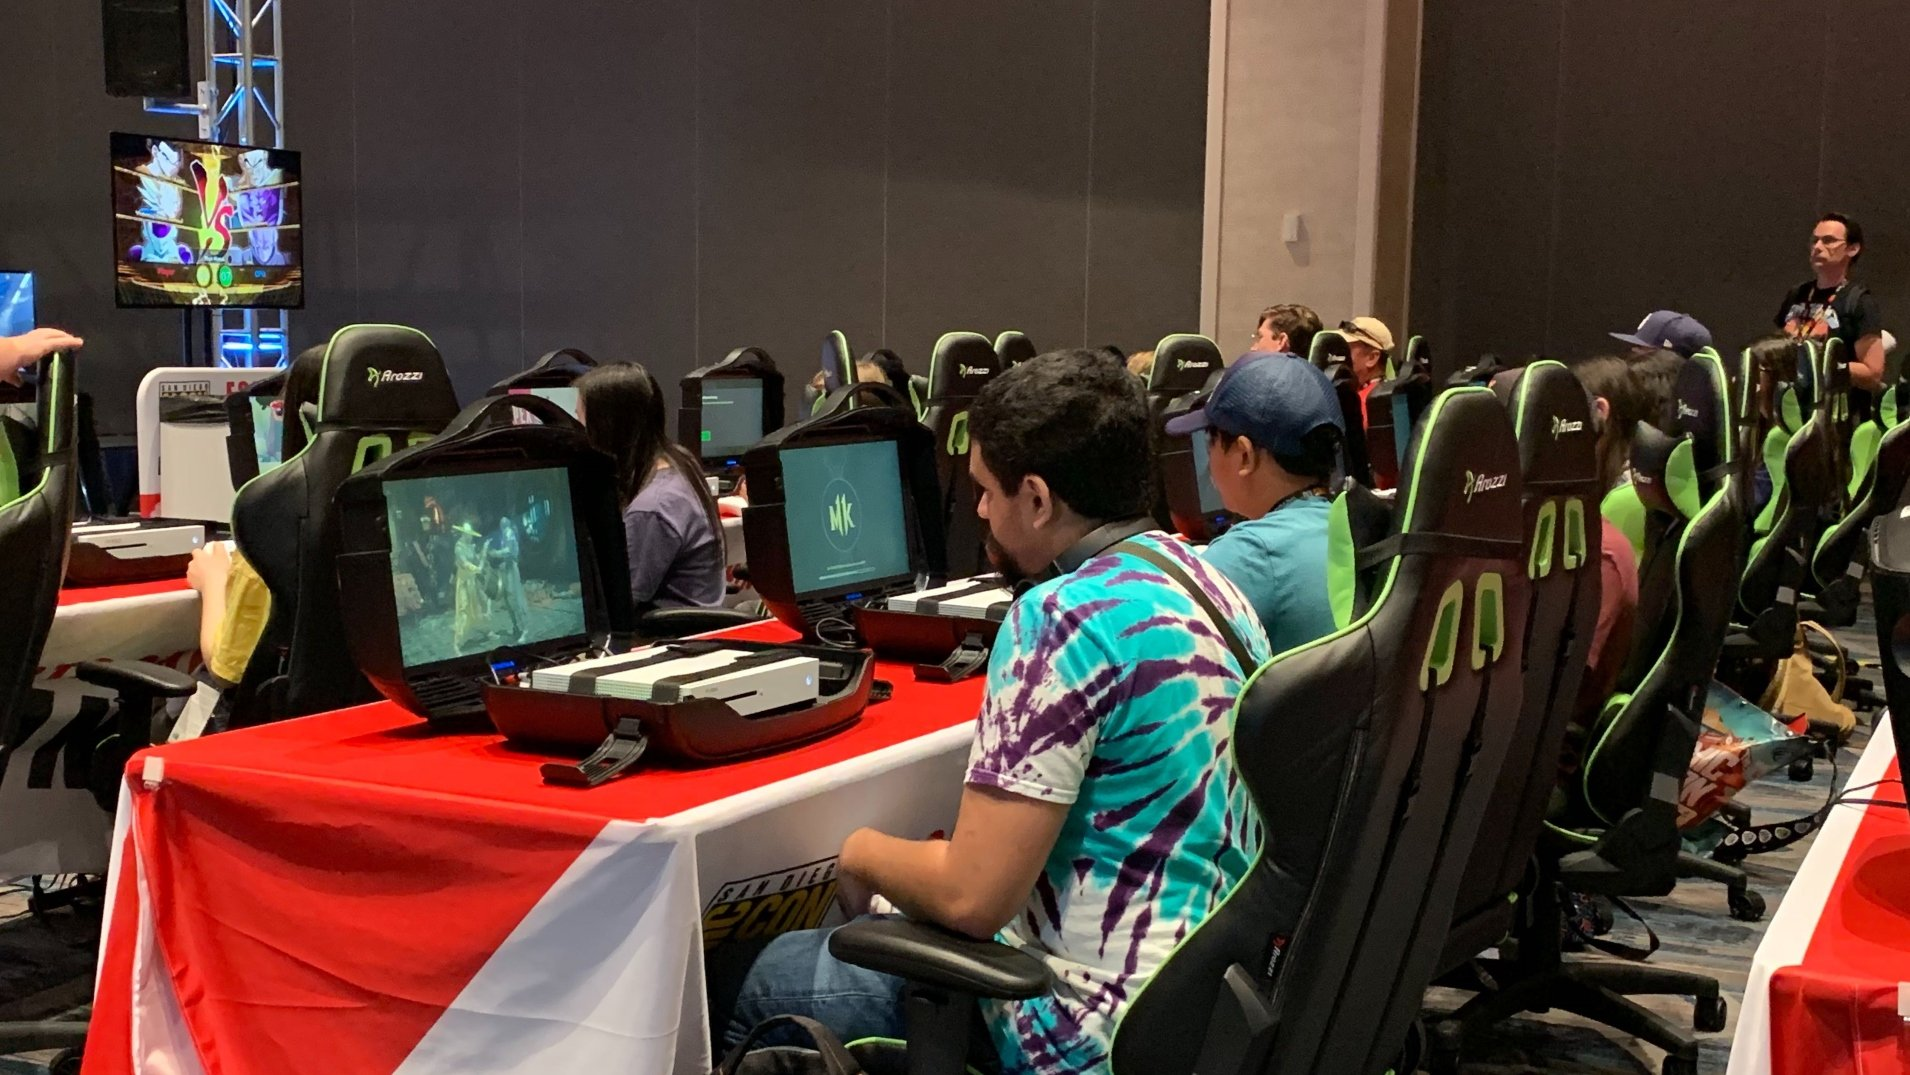 SDCC19 esports lounge raised money for charity 750,000 viewers